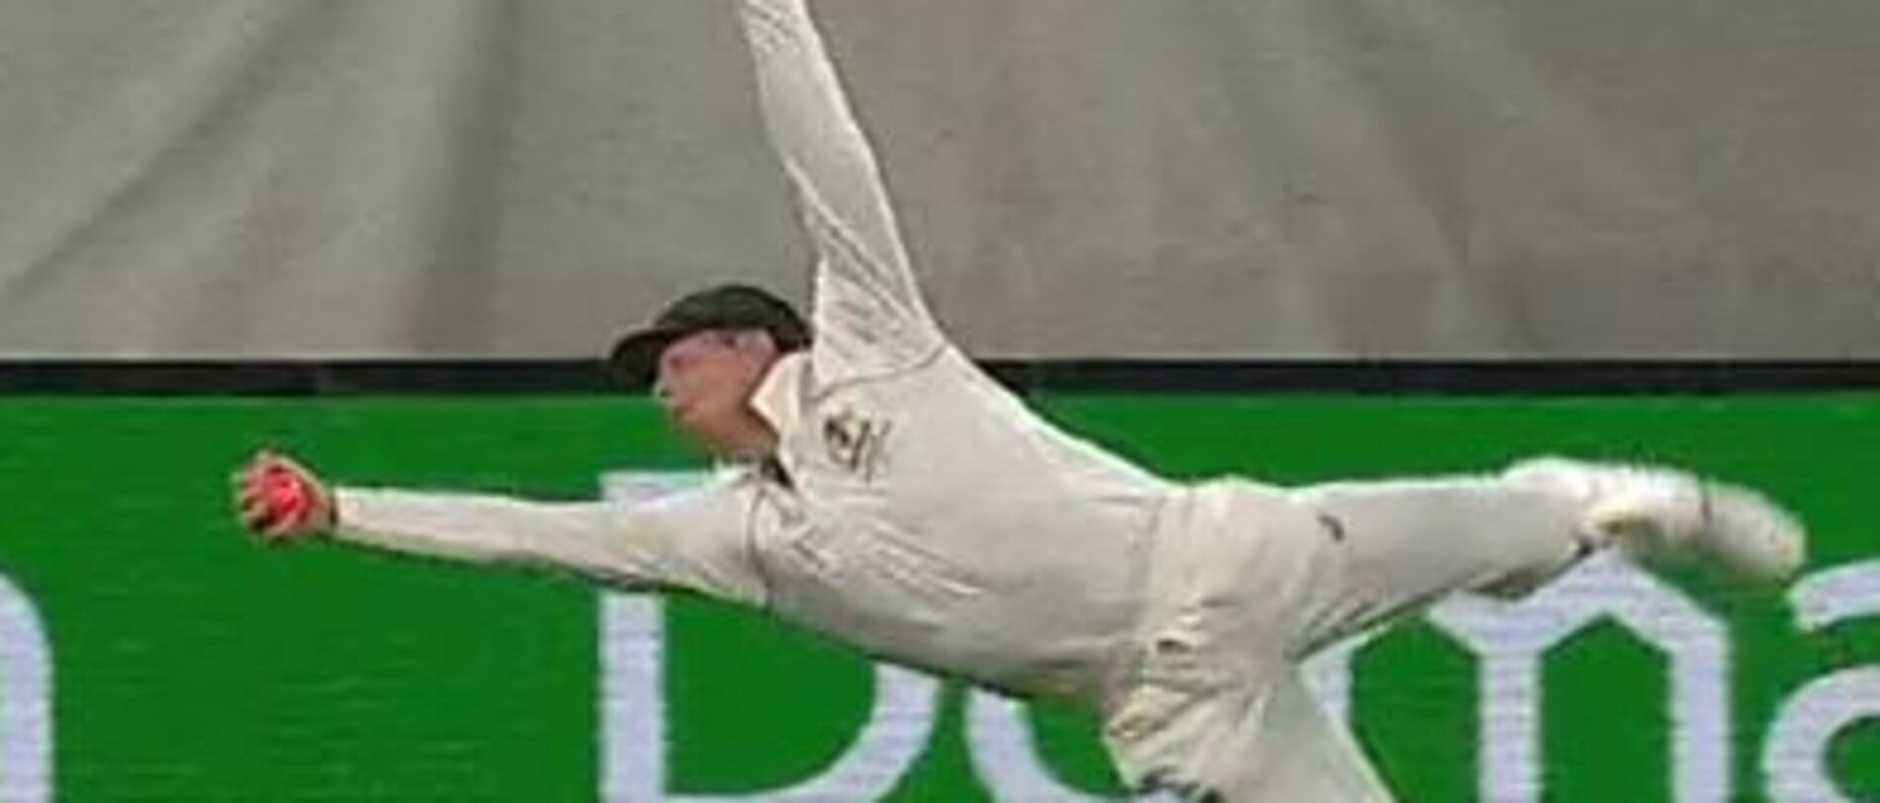 Steve Smith pulls off one of the most insane catches you'll ever see.